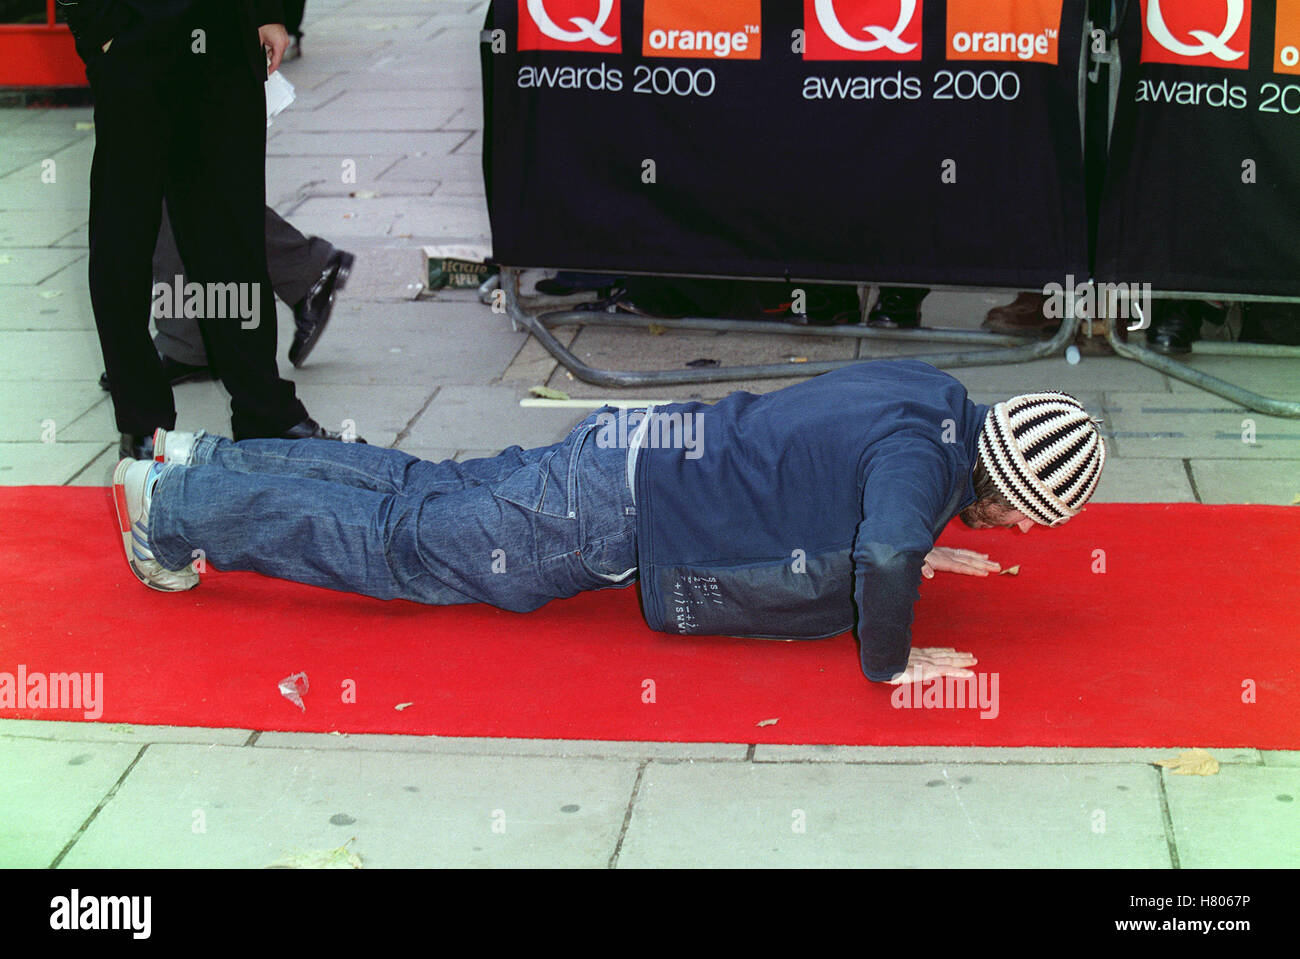 BADLY DRAWN BOY THE Q AWARDS 2000 PARK LANE HOTEL PARK LANE LONDON ENGLAND 03 November 2000 - Stock Image